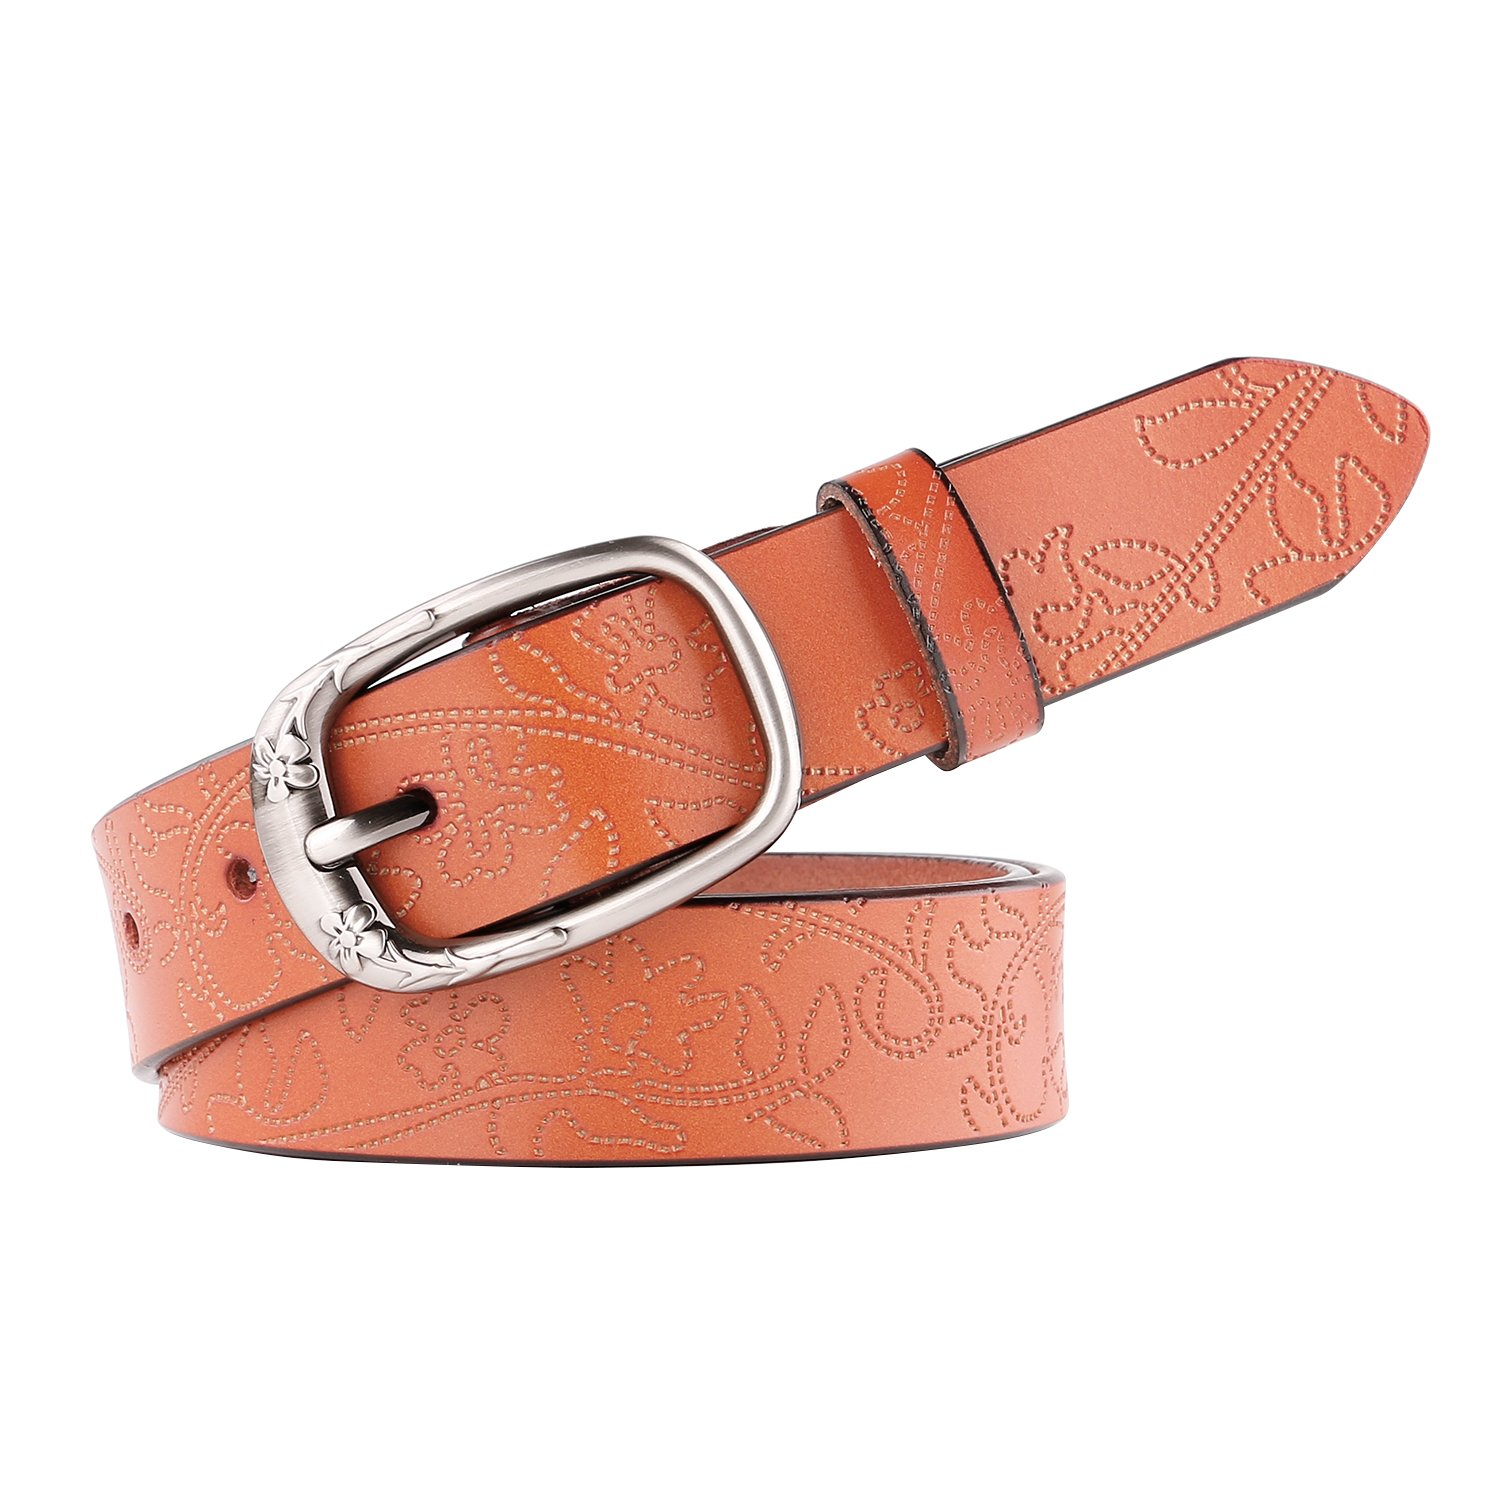 WERFORU Classic Women Leather Belts for Jeans Embossed Women Belt with Pin Buckl